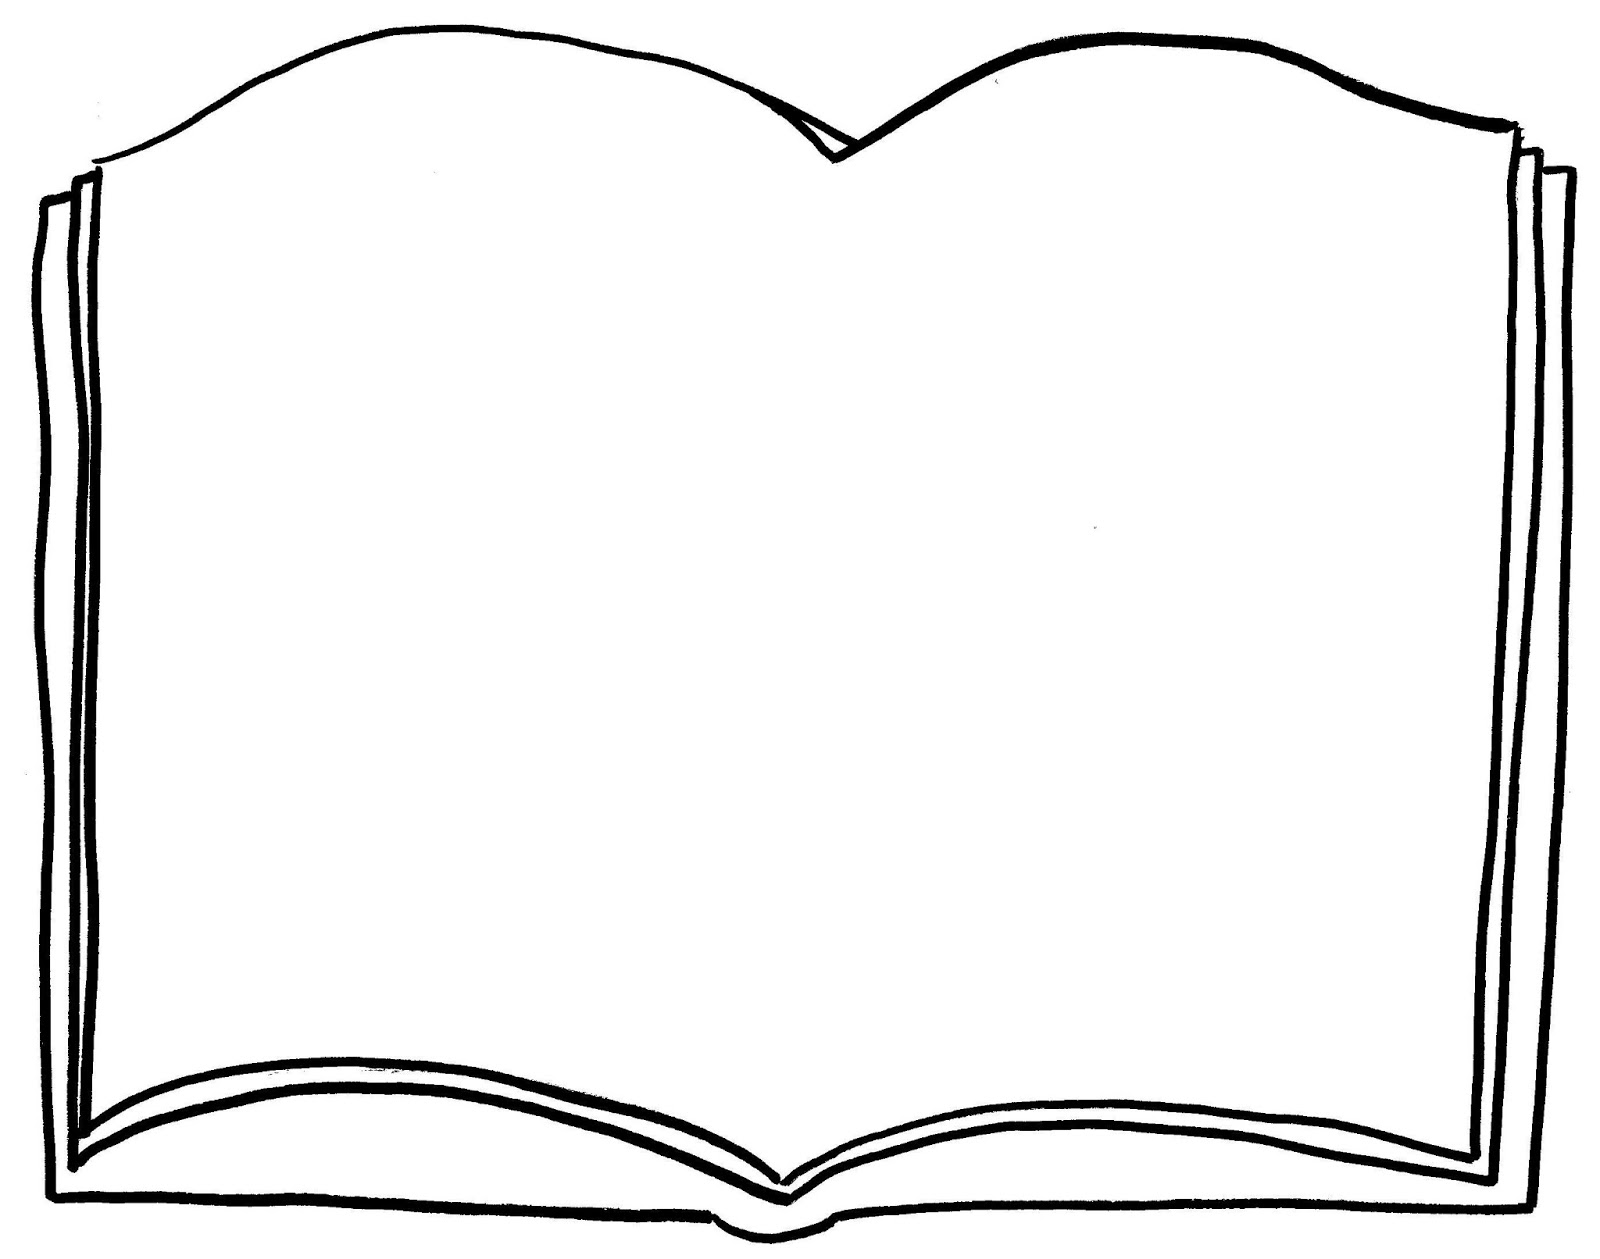 Open Book Coloring Page Clipart Best Books For Coloring